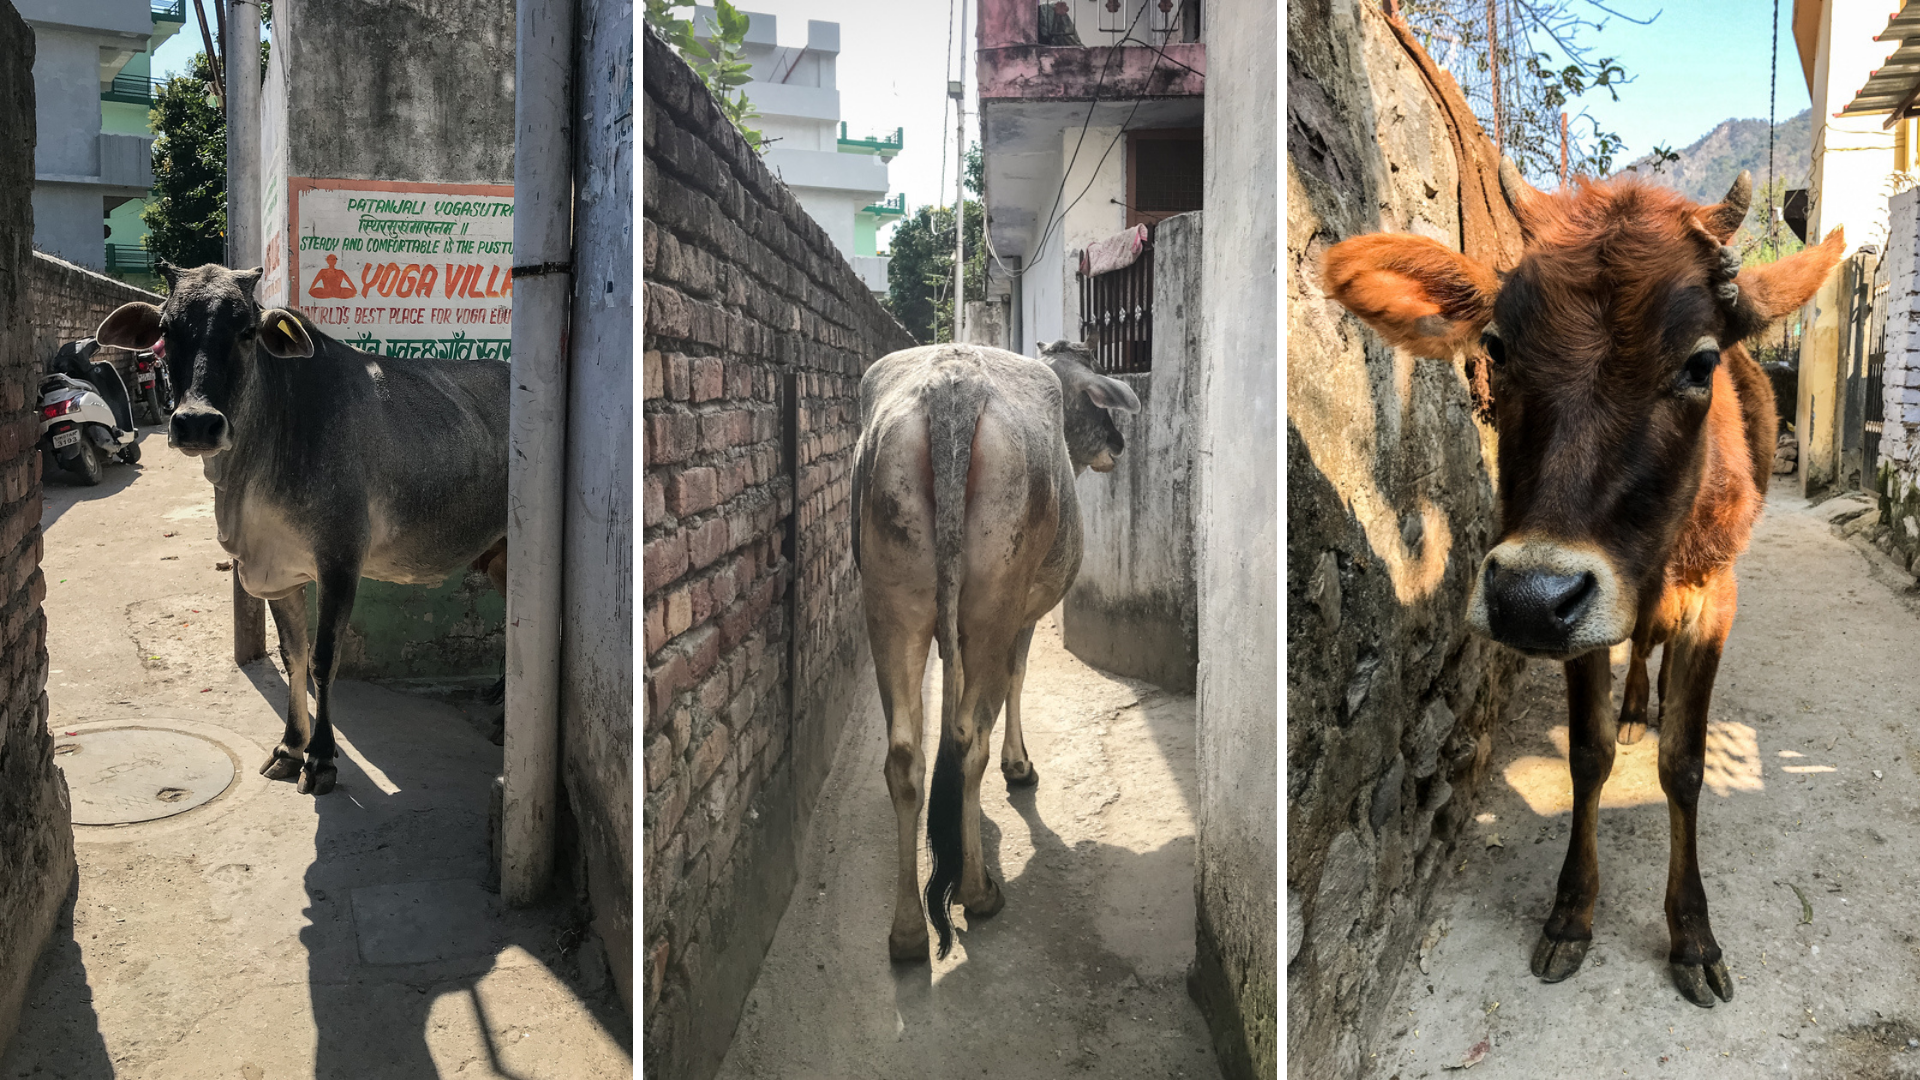 Cow in alley. Who wants to pass here, must push the animal out of the way.